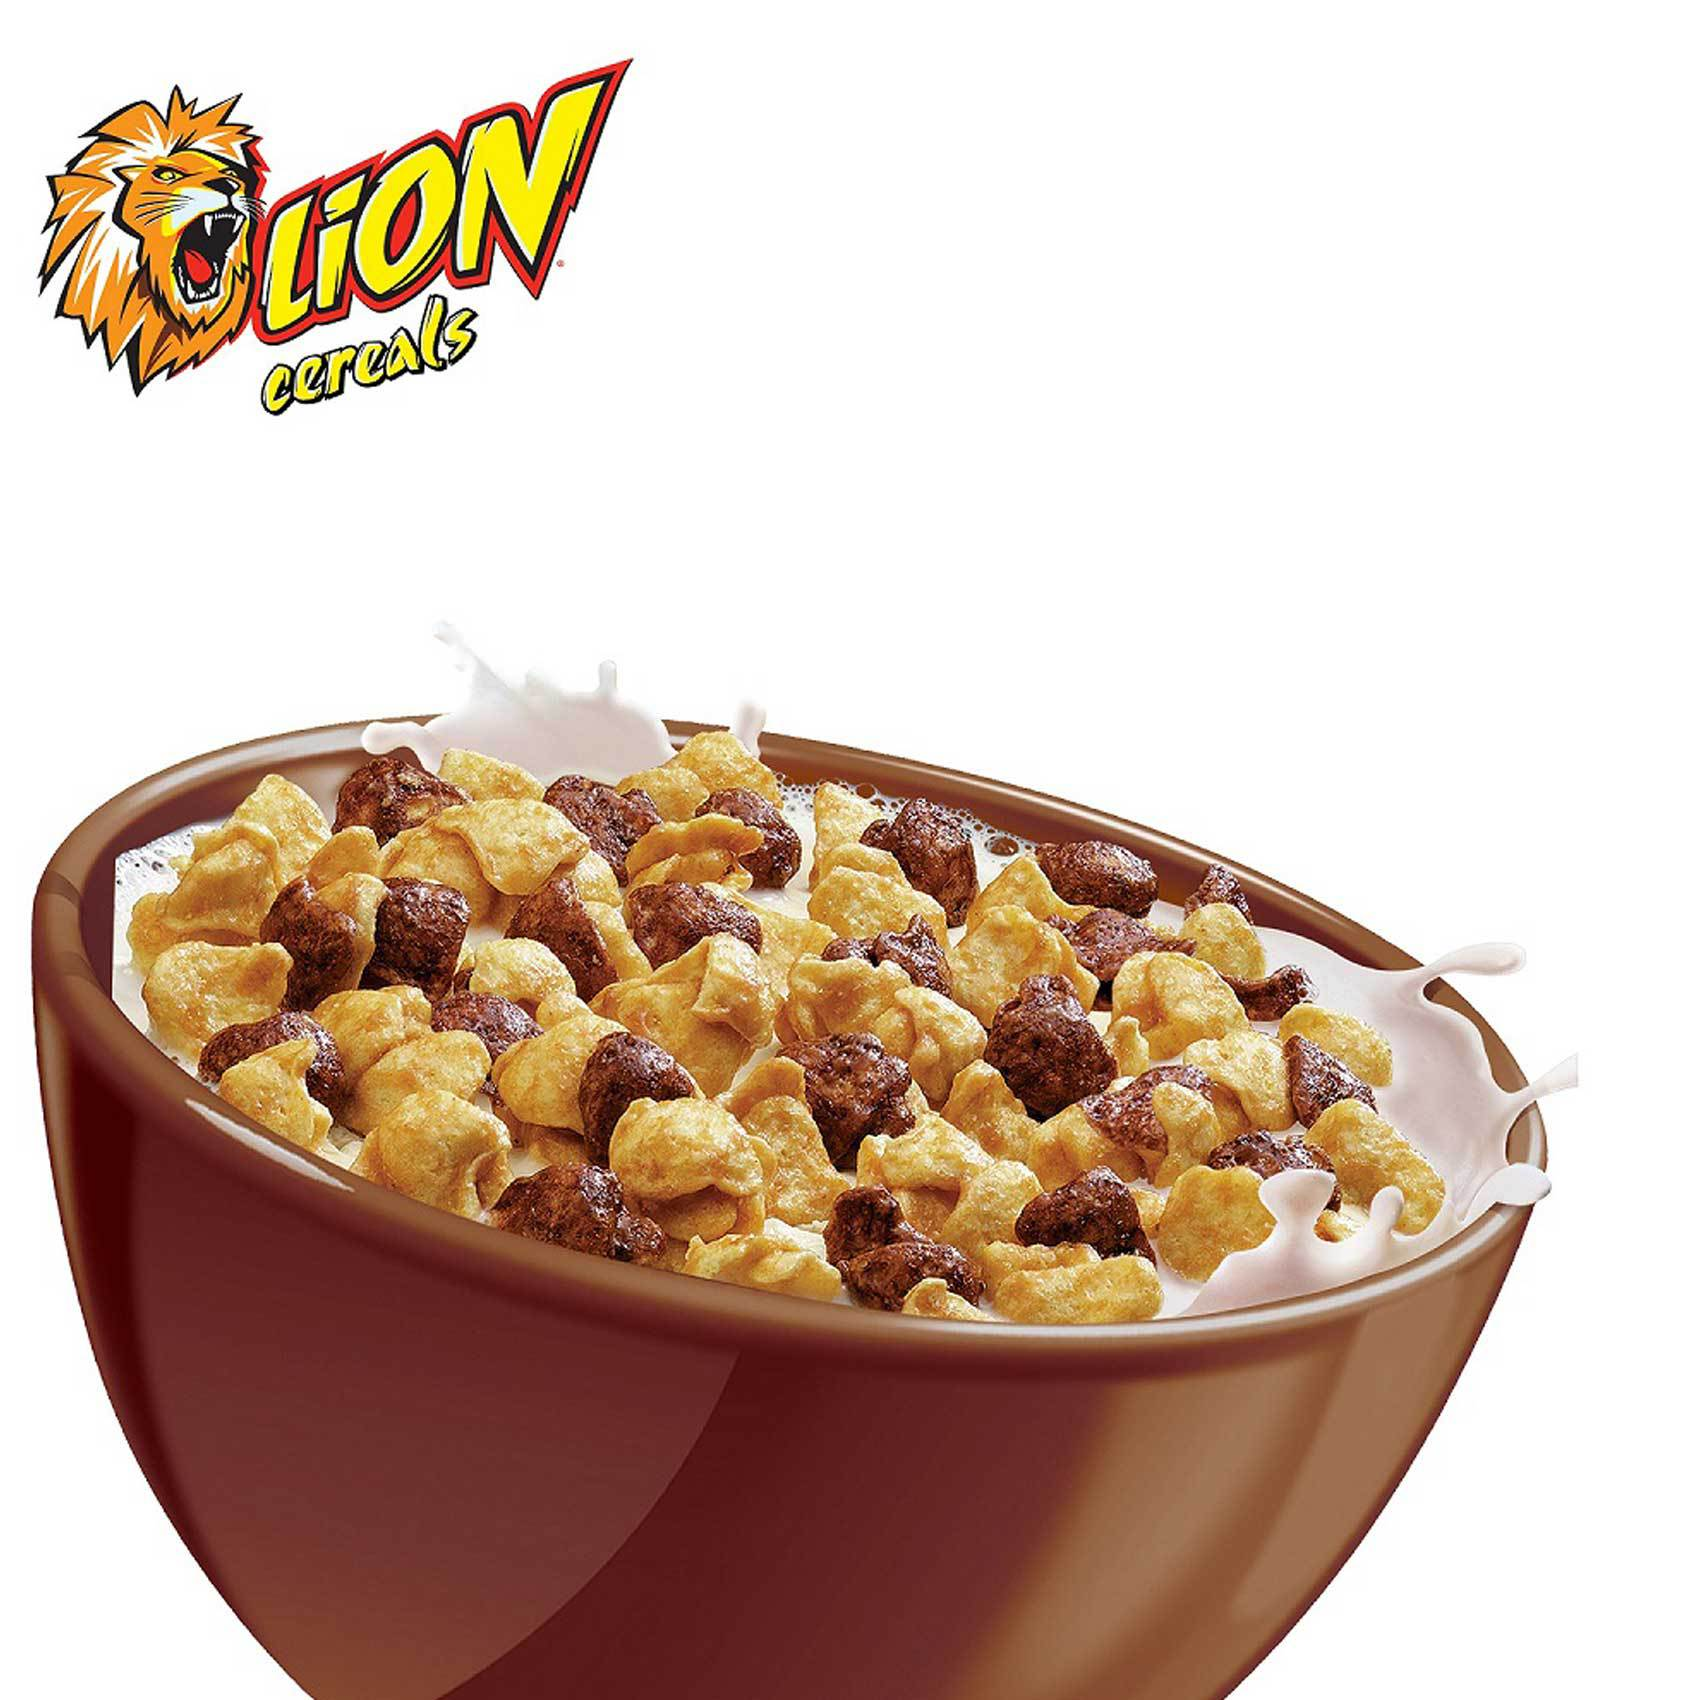 NESTLE CEREAL LION 400G